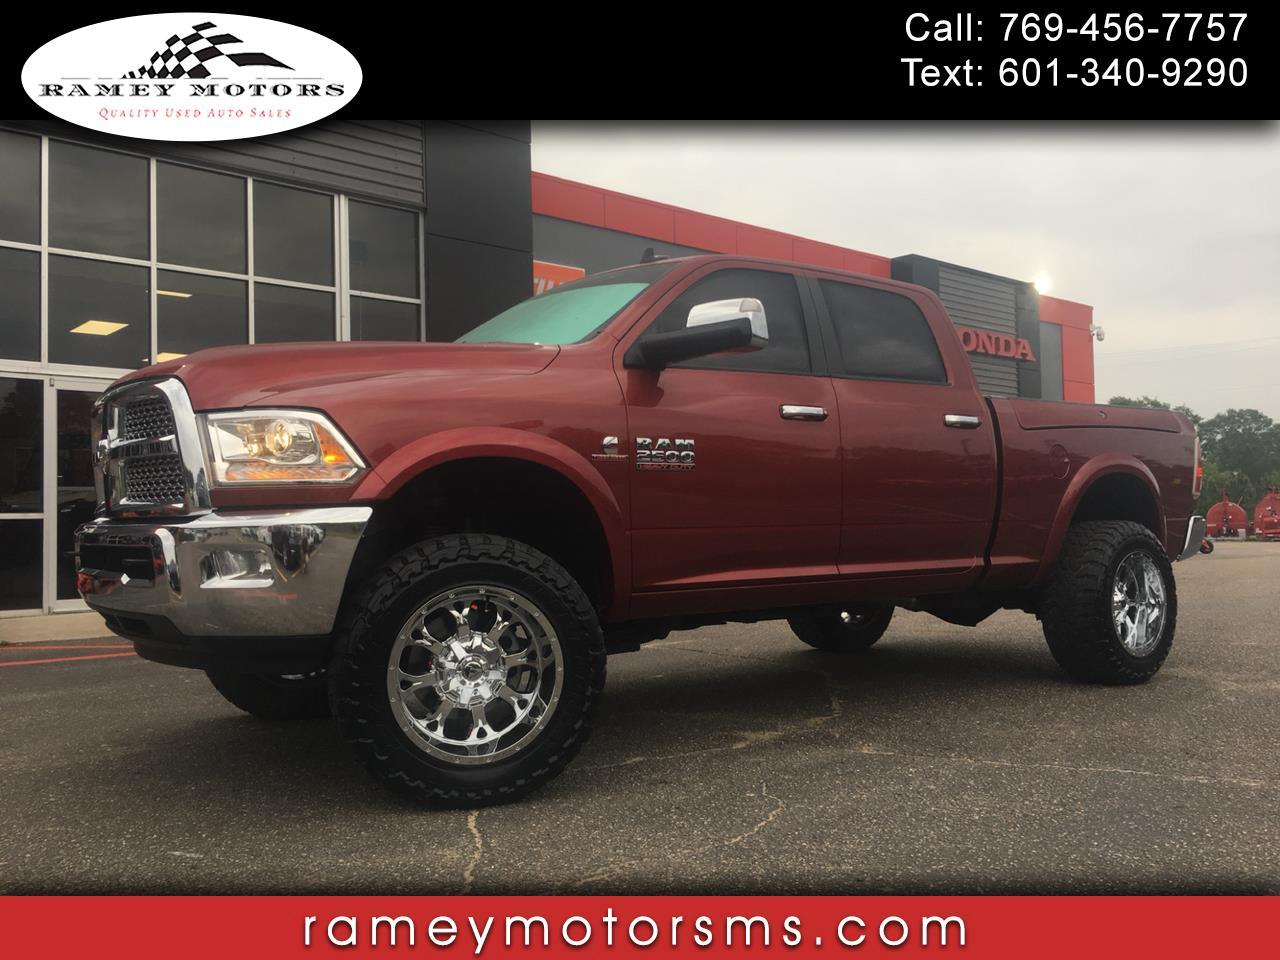 2015 RAM 2500 4WD CREWCAB LARAMIE CUSTOM LIFTED DPF DELETED